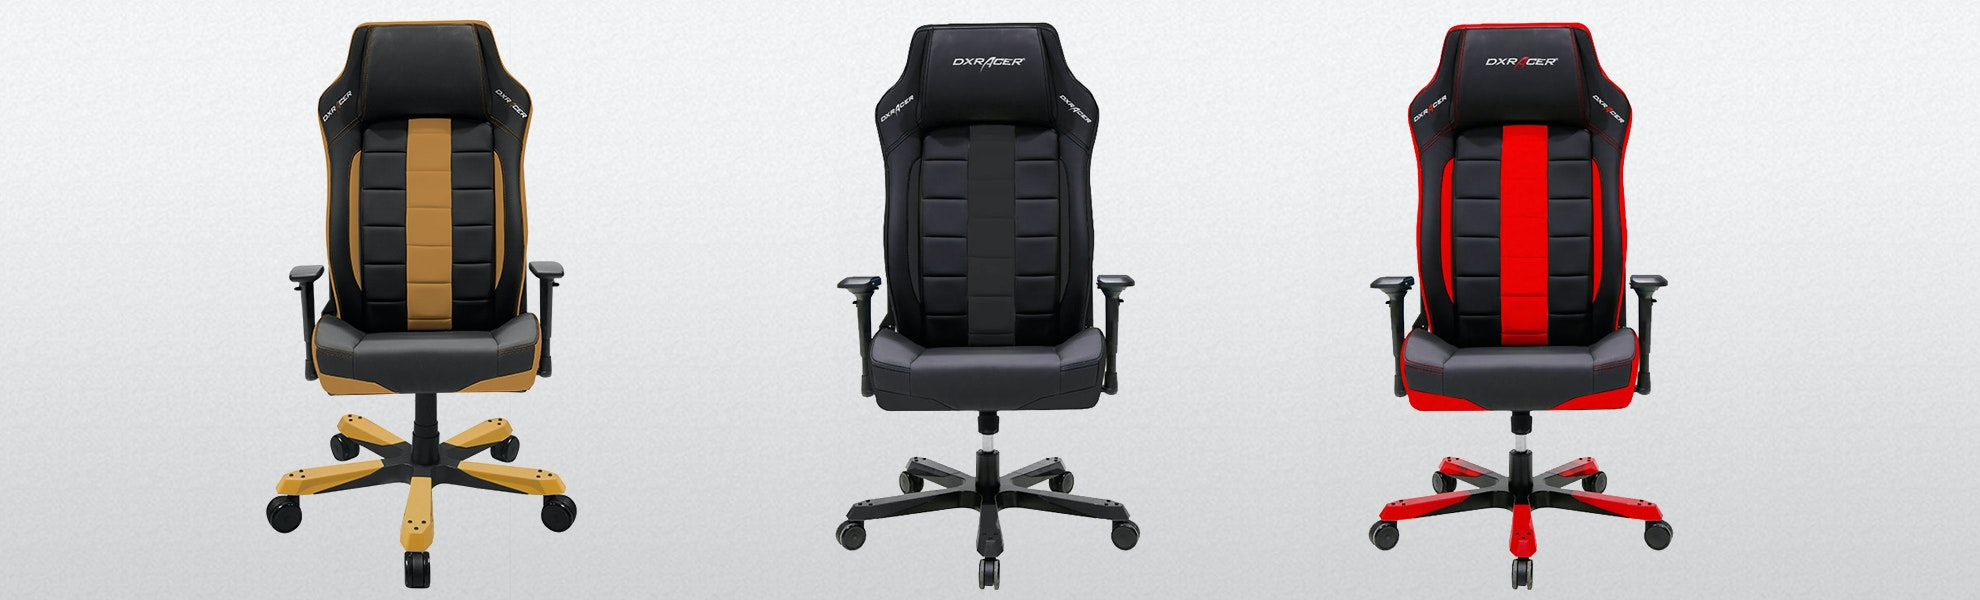 office chair quality pictures of covers dxracer boss series chairs price reviews massdrop